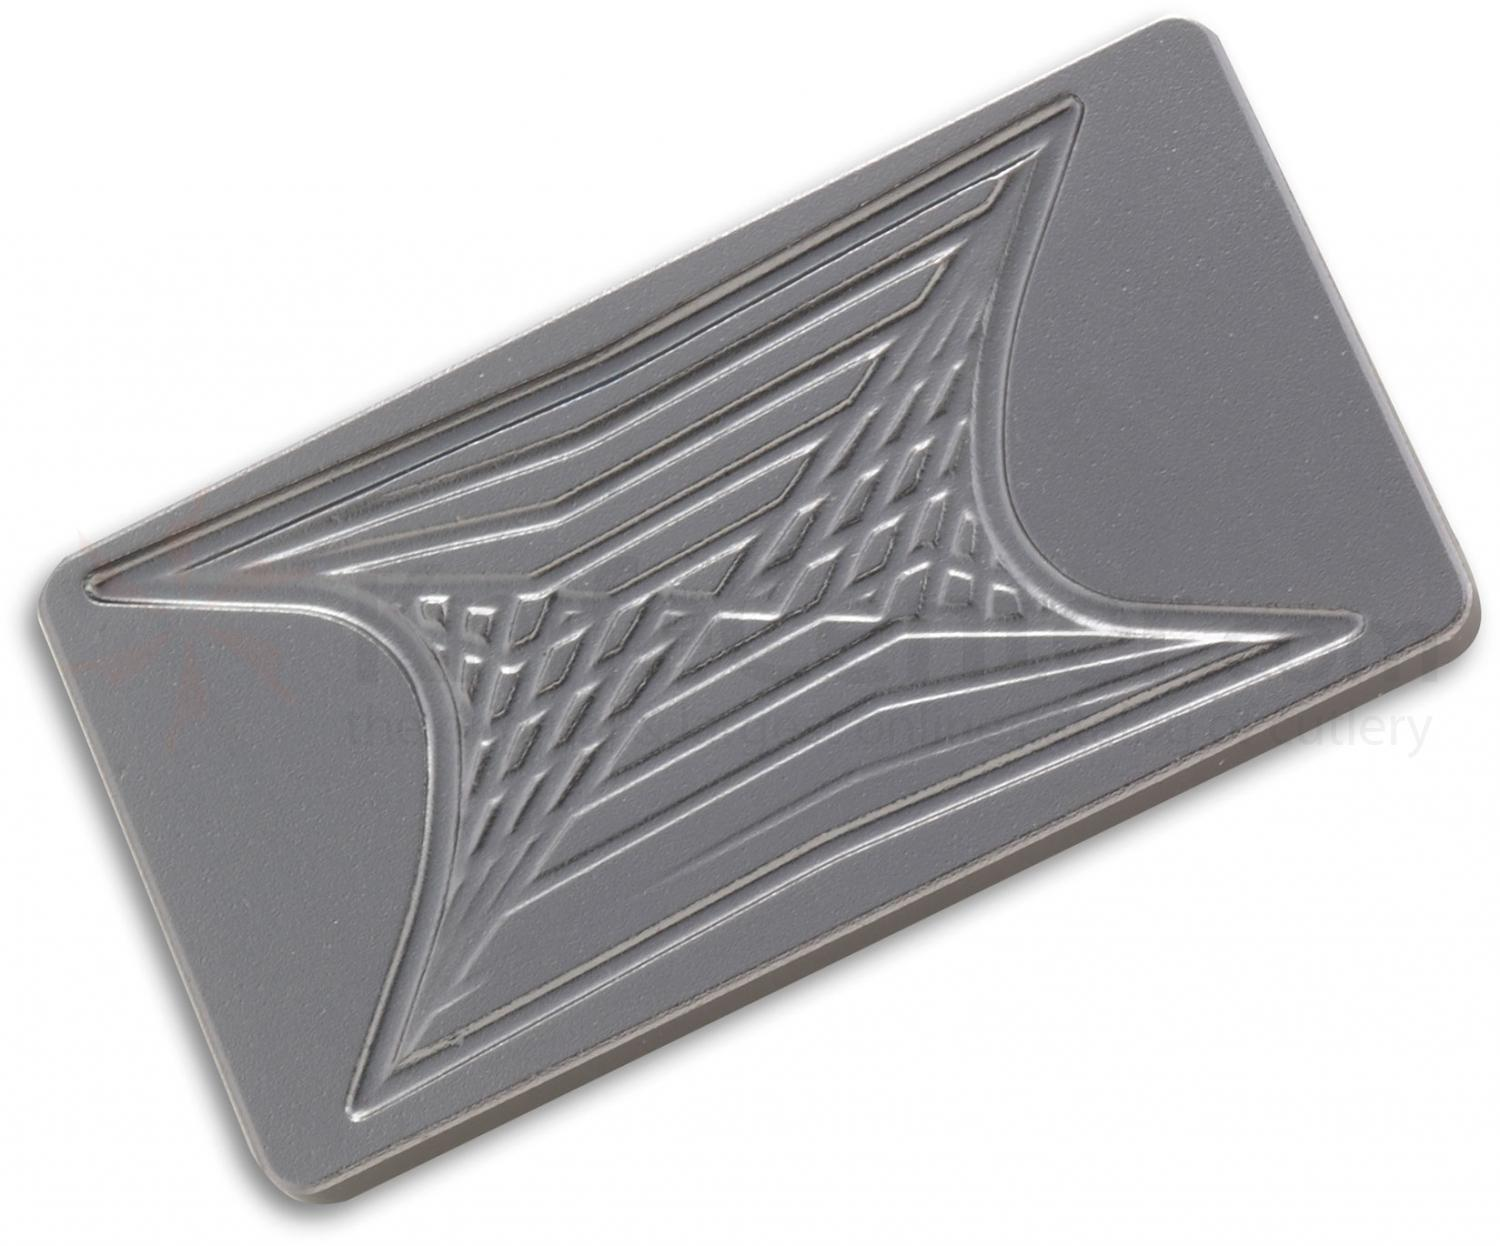 Columbia River 5270MC Tighe Coon Money Clip, Aluminum